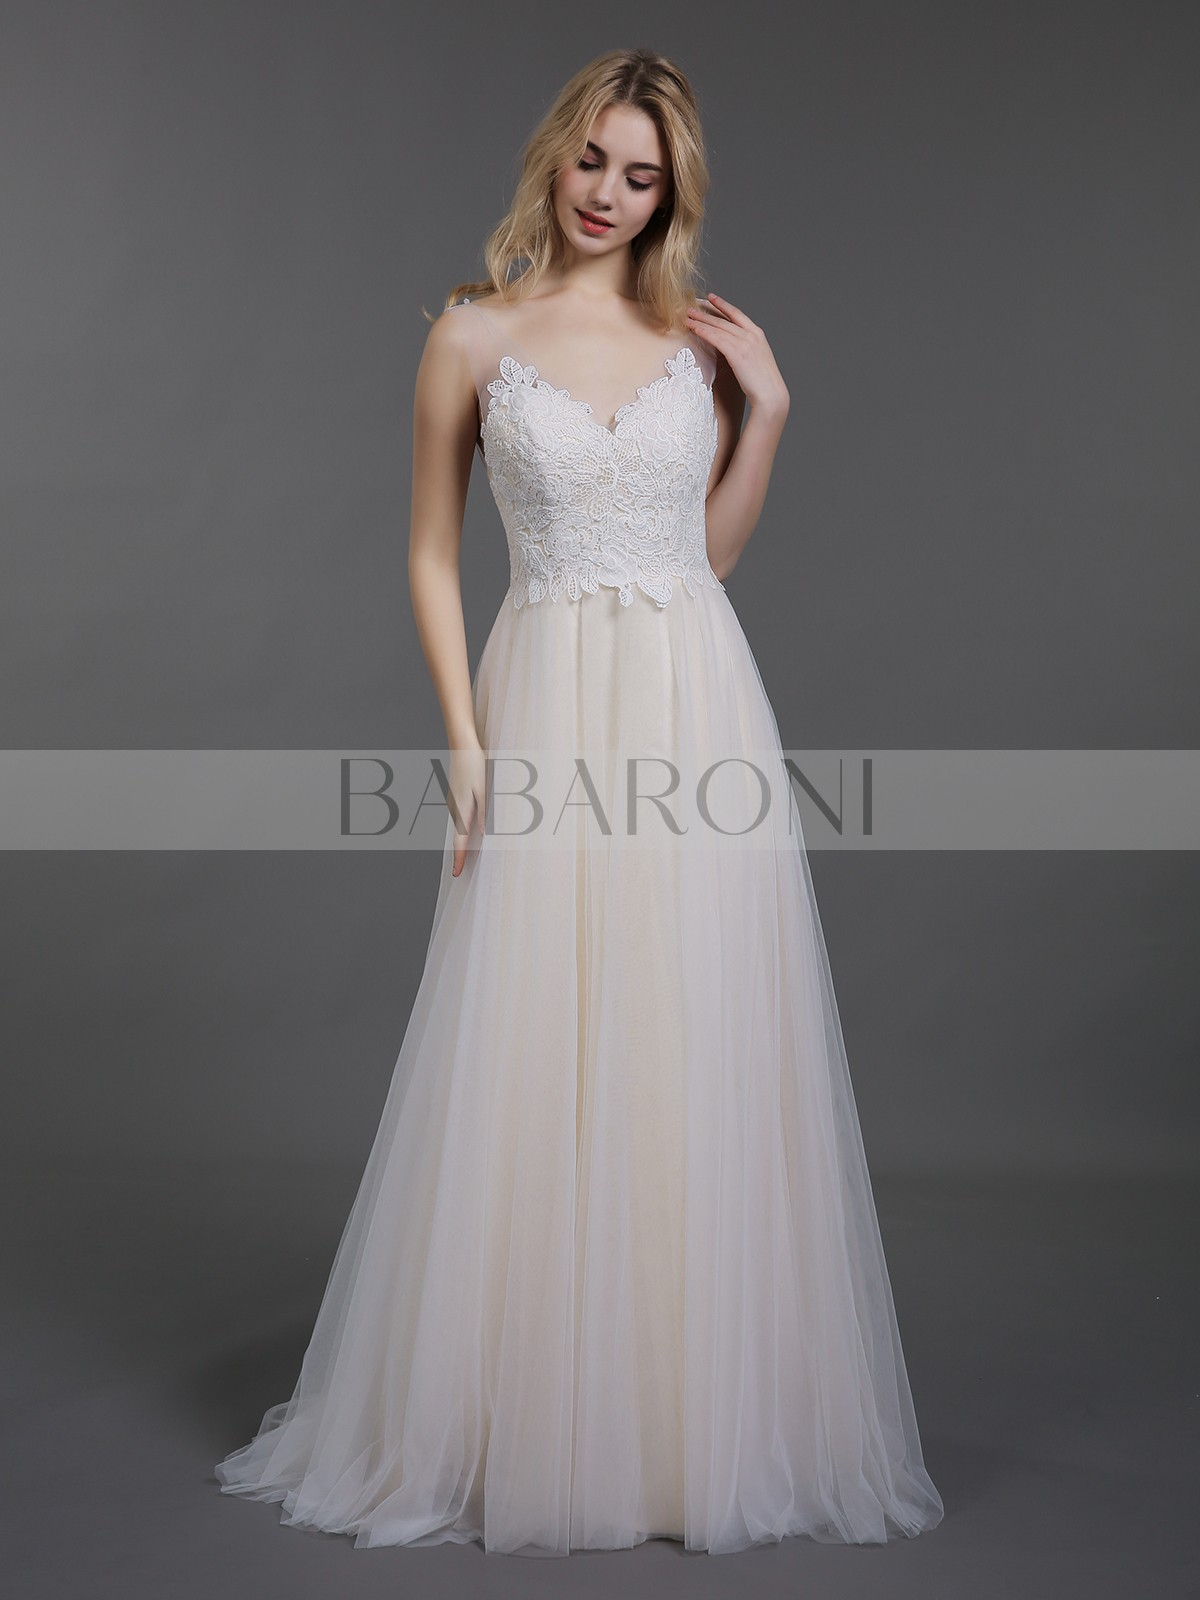 f890a53d847 A-line Tulle Champagne Backless Appliqued Sweep/Brush Train V-neck  Sleeveless Simple. Loading zoom